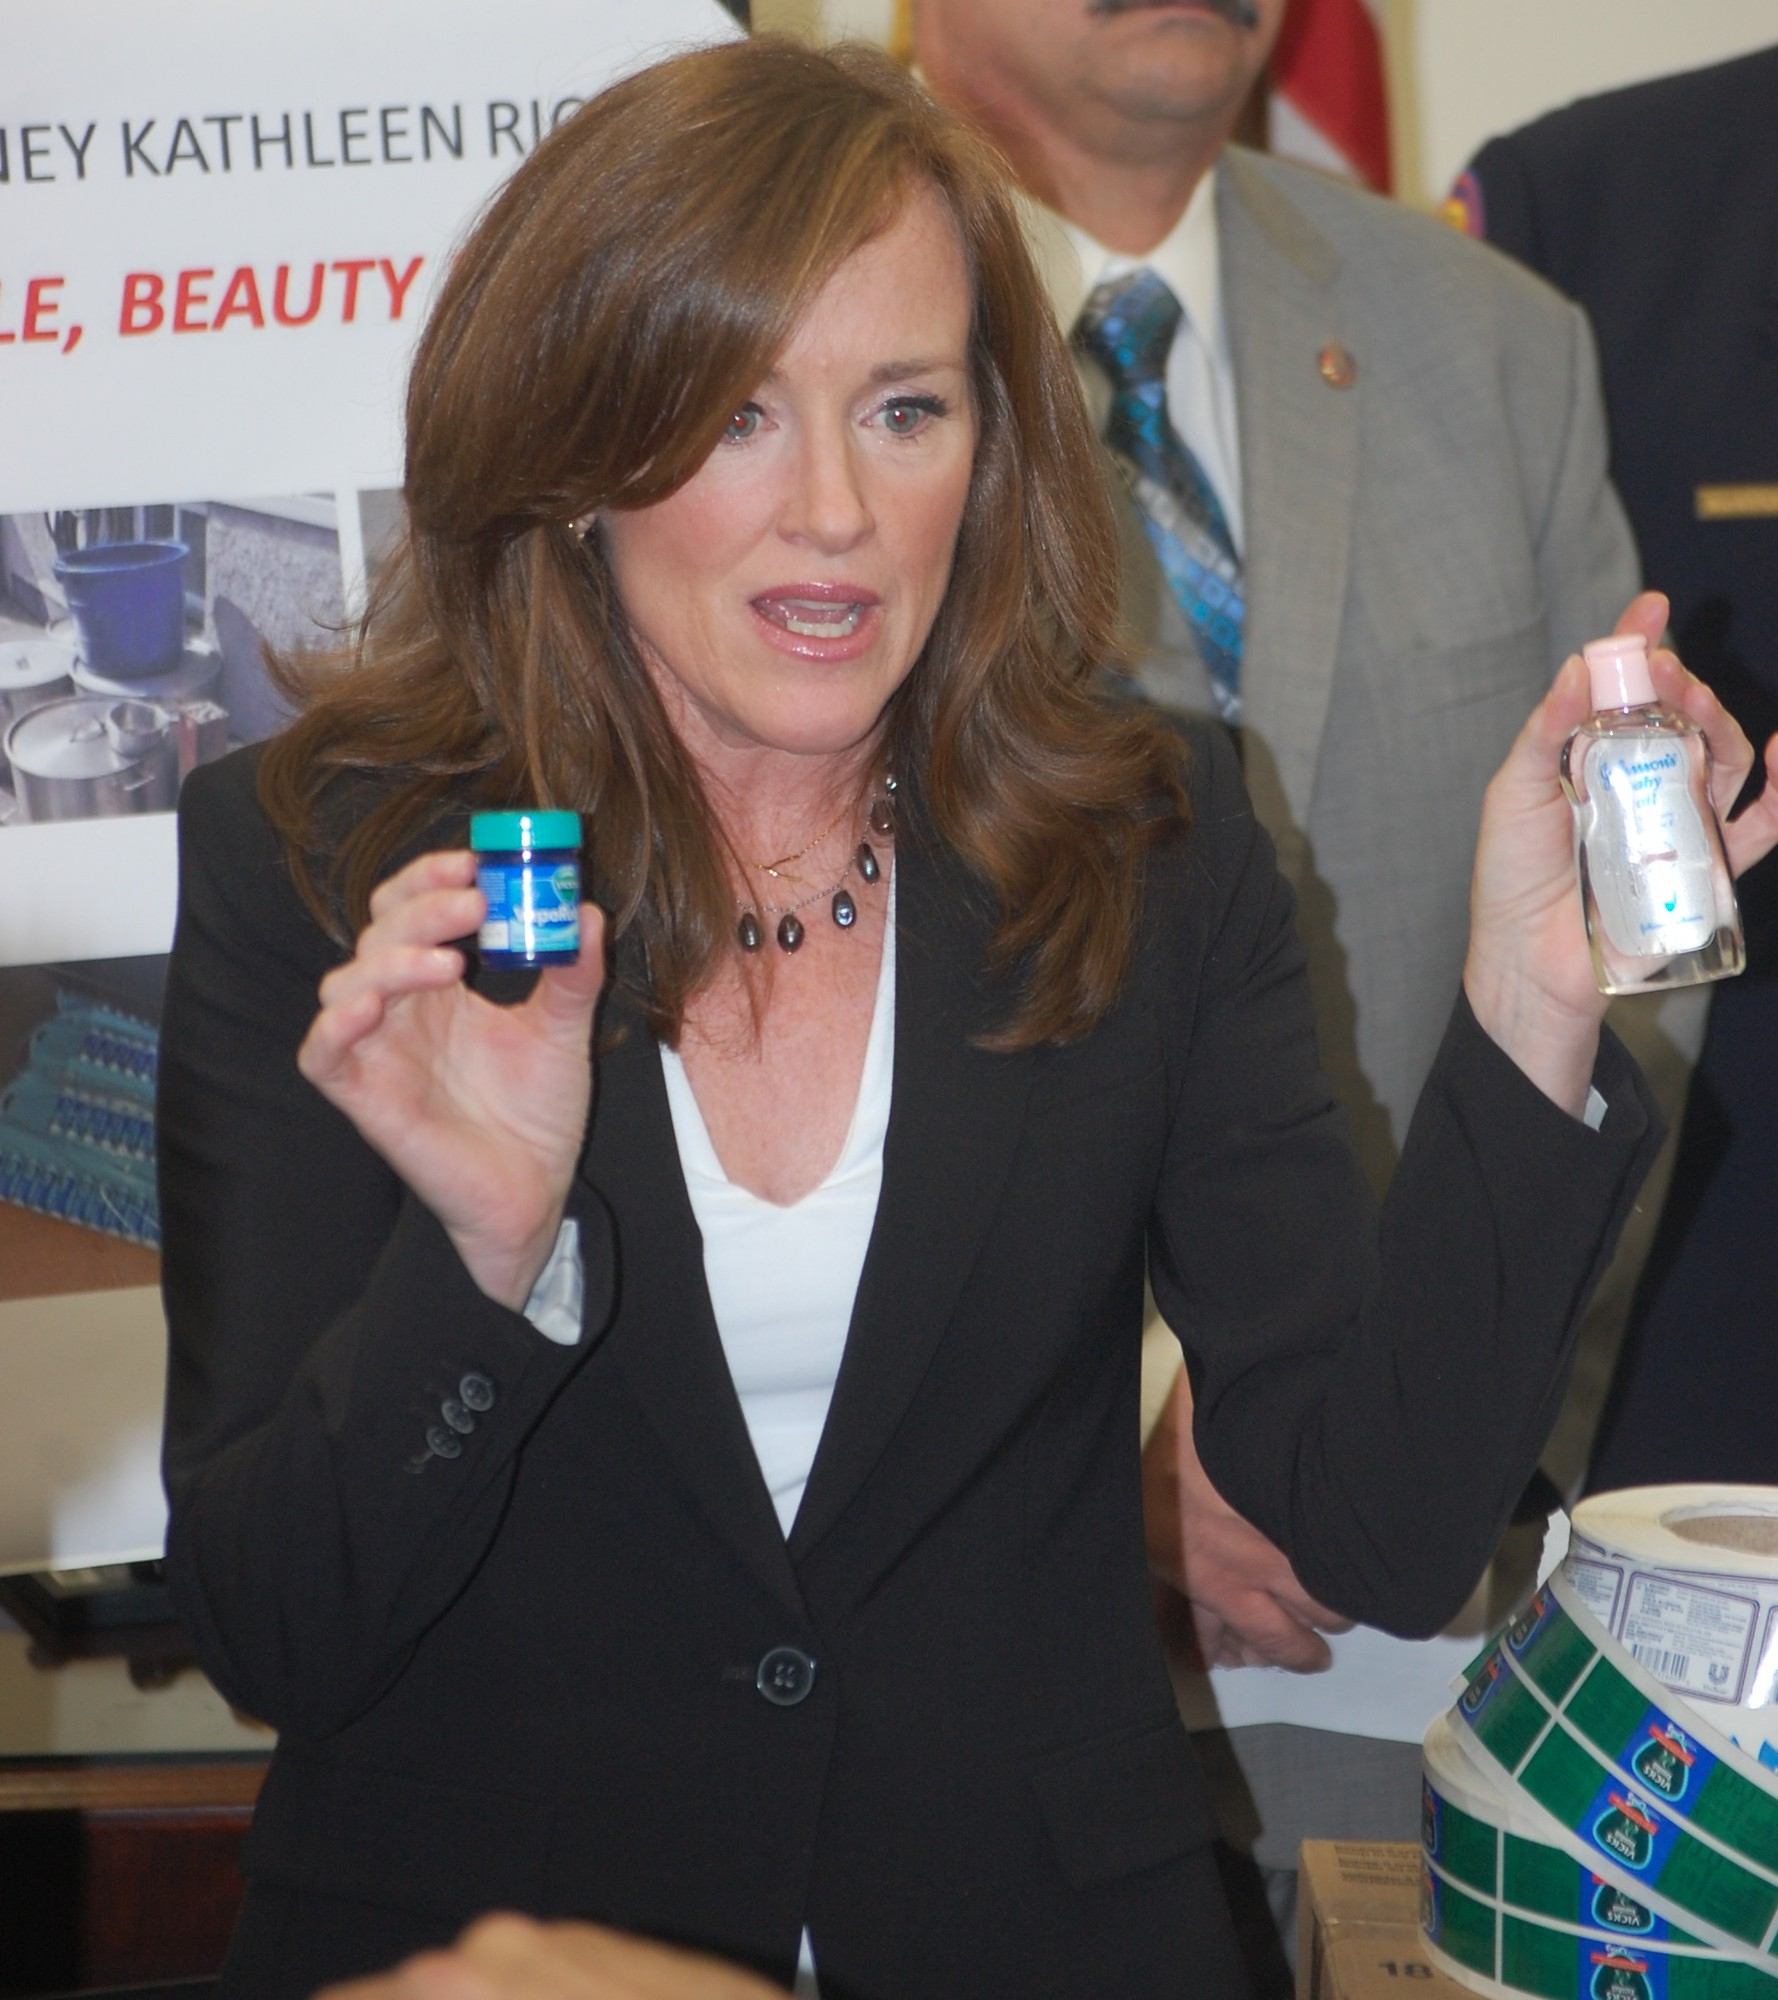 At the Nassau County CourtHouse in Mineola, District Attorney Kathleen Rice showed the kinds of products the duo was counterfeiting.